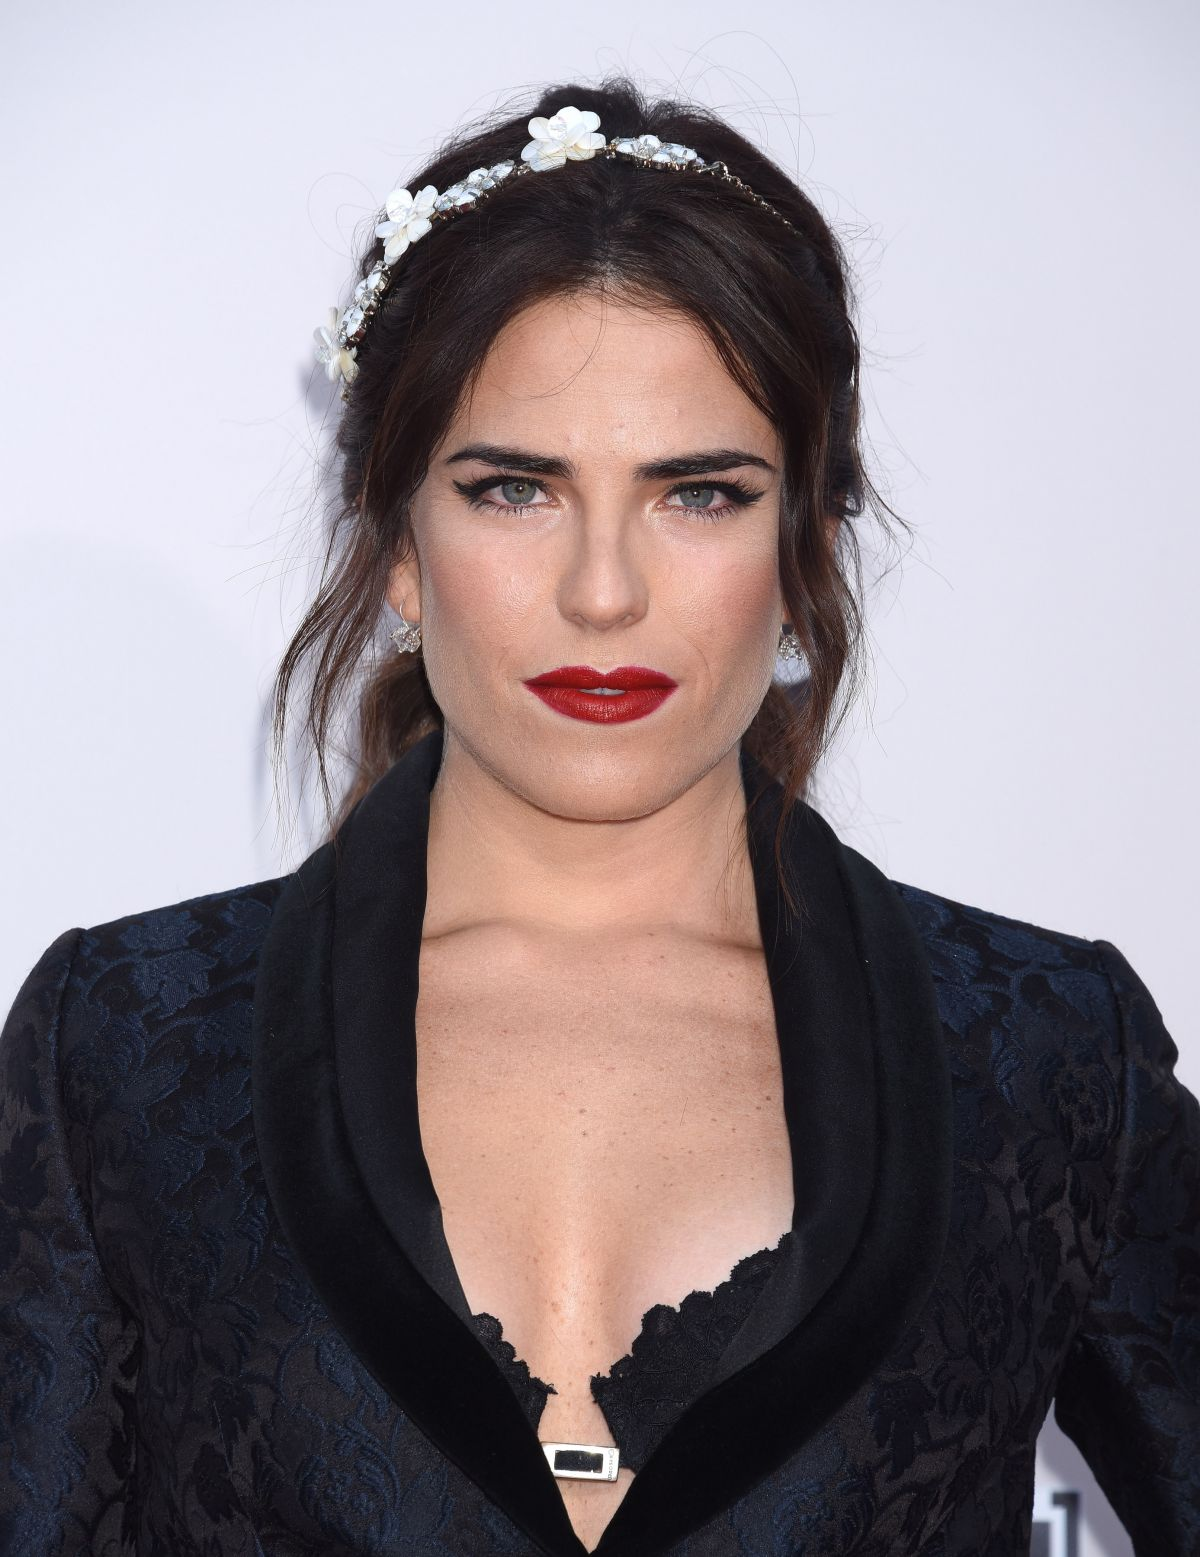 KARLA SOUZA at 2015 American Music Awards in Los Angeles 11/22/15